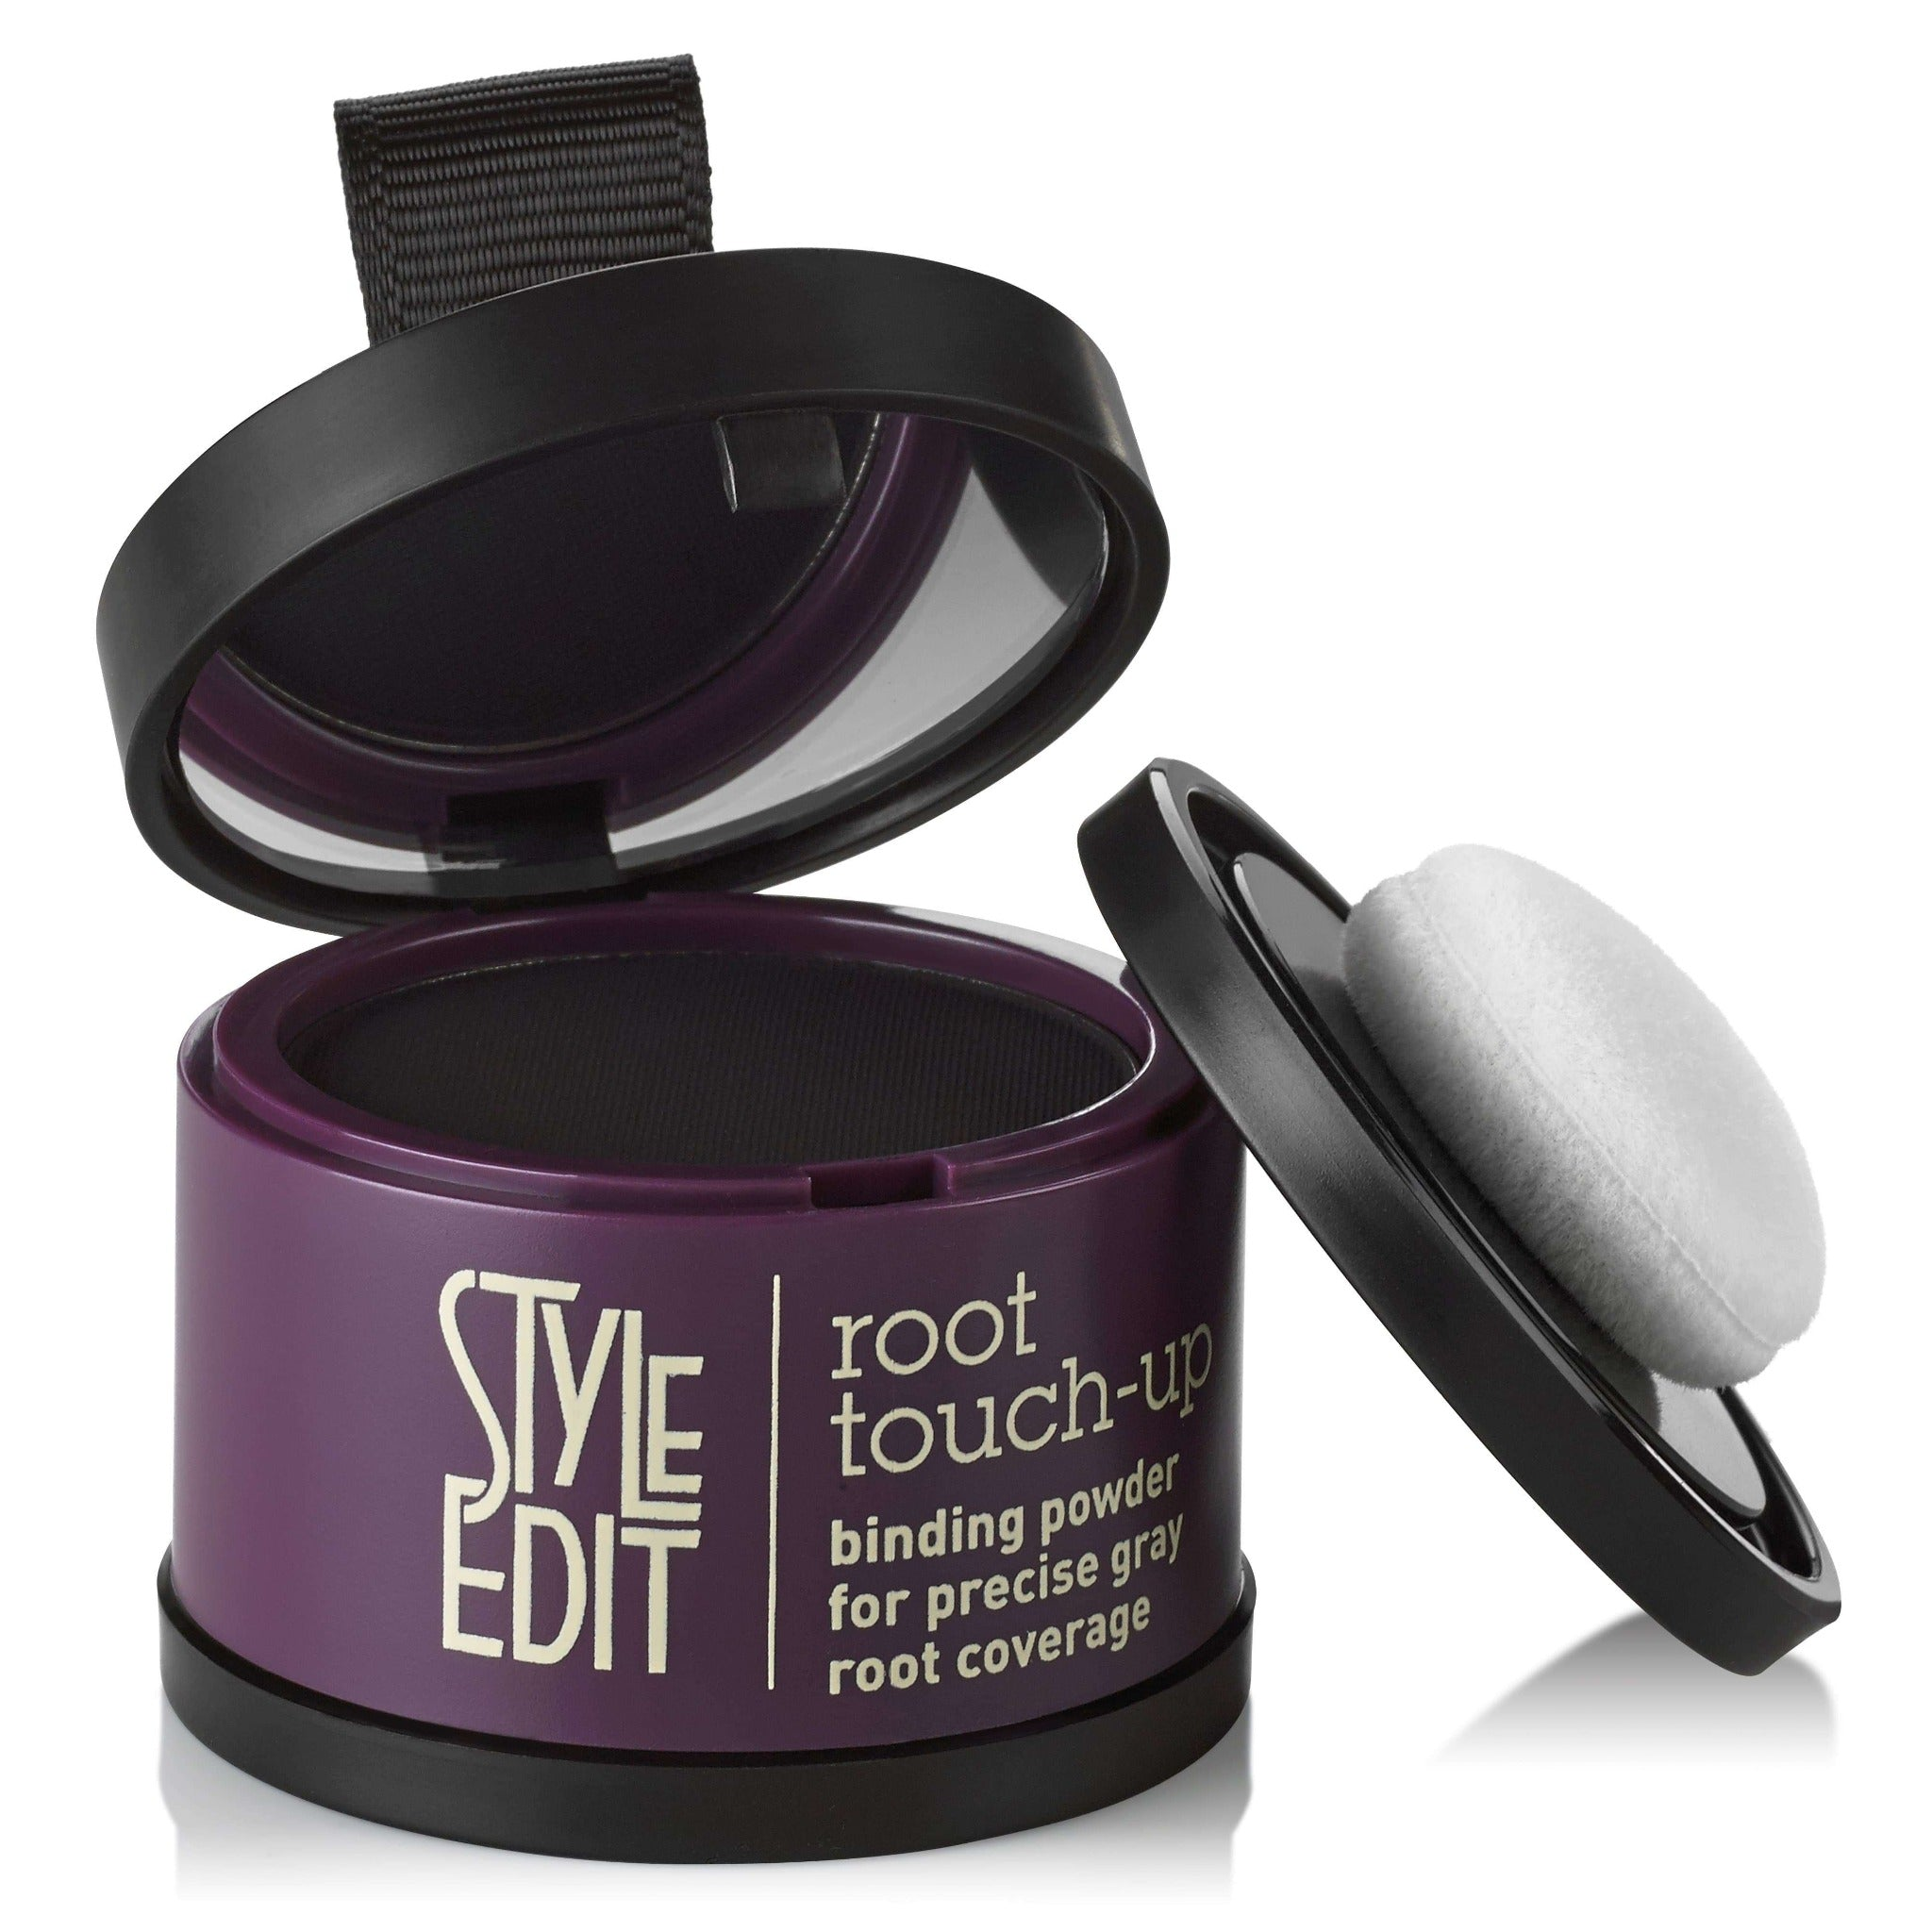 Style Edit Root touch-up data-zoom=